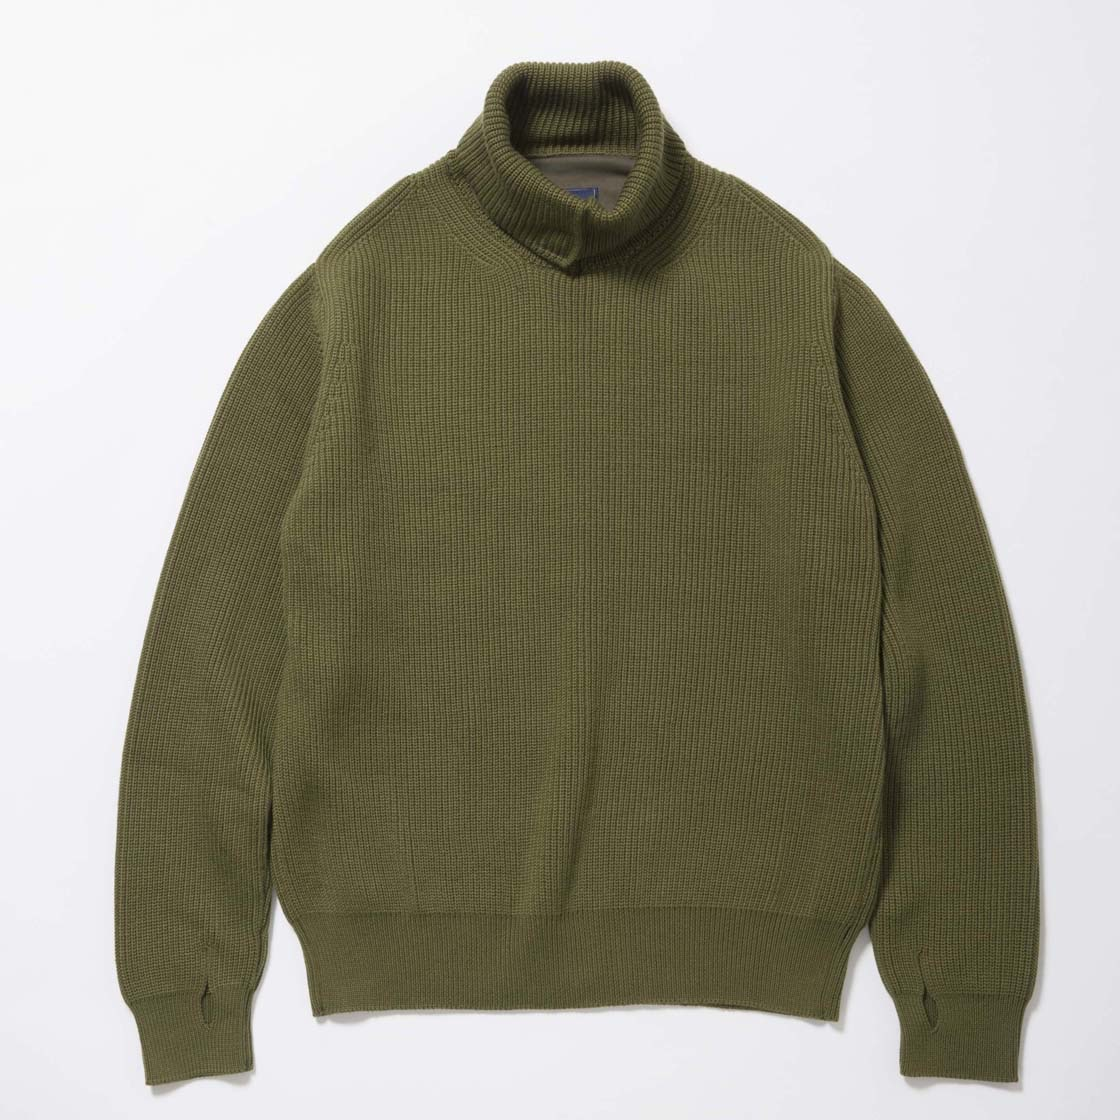 Open Collar Turtleneck Sweater